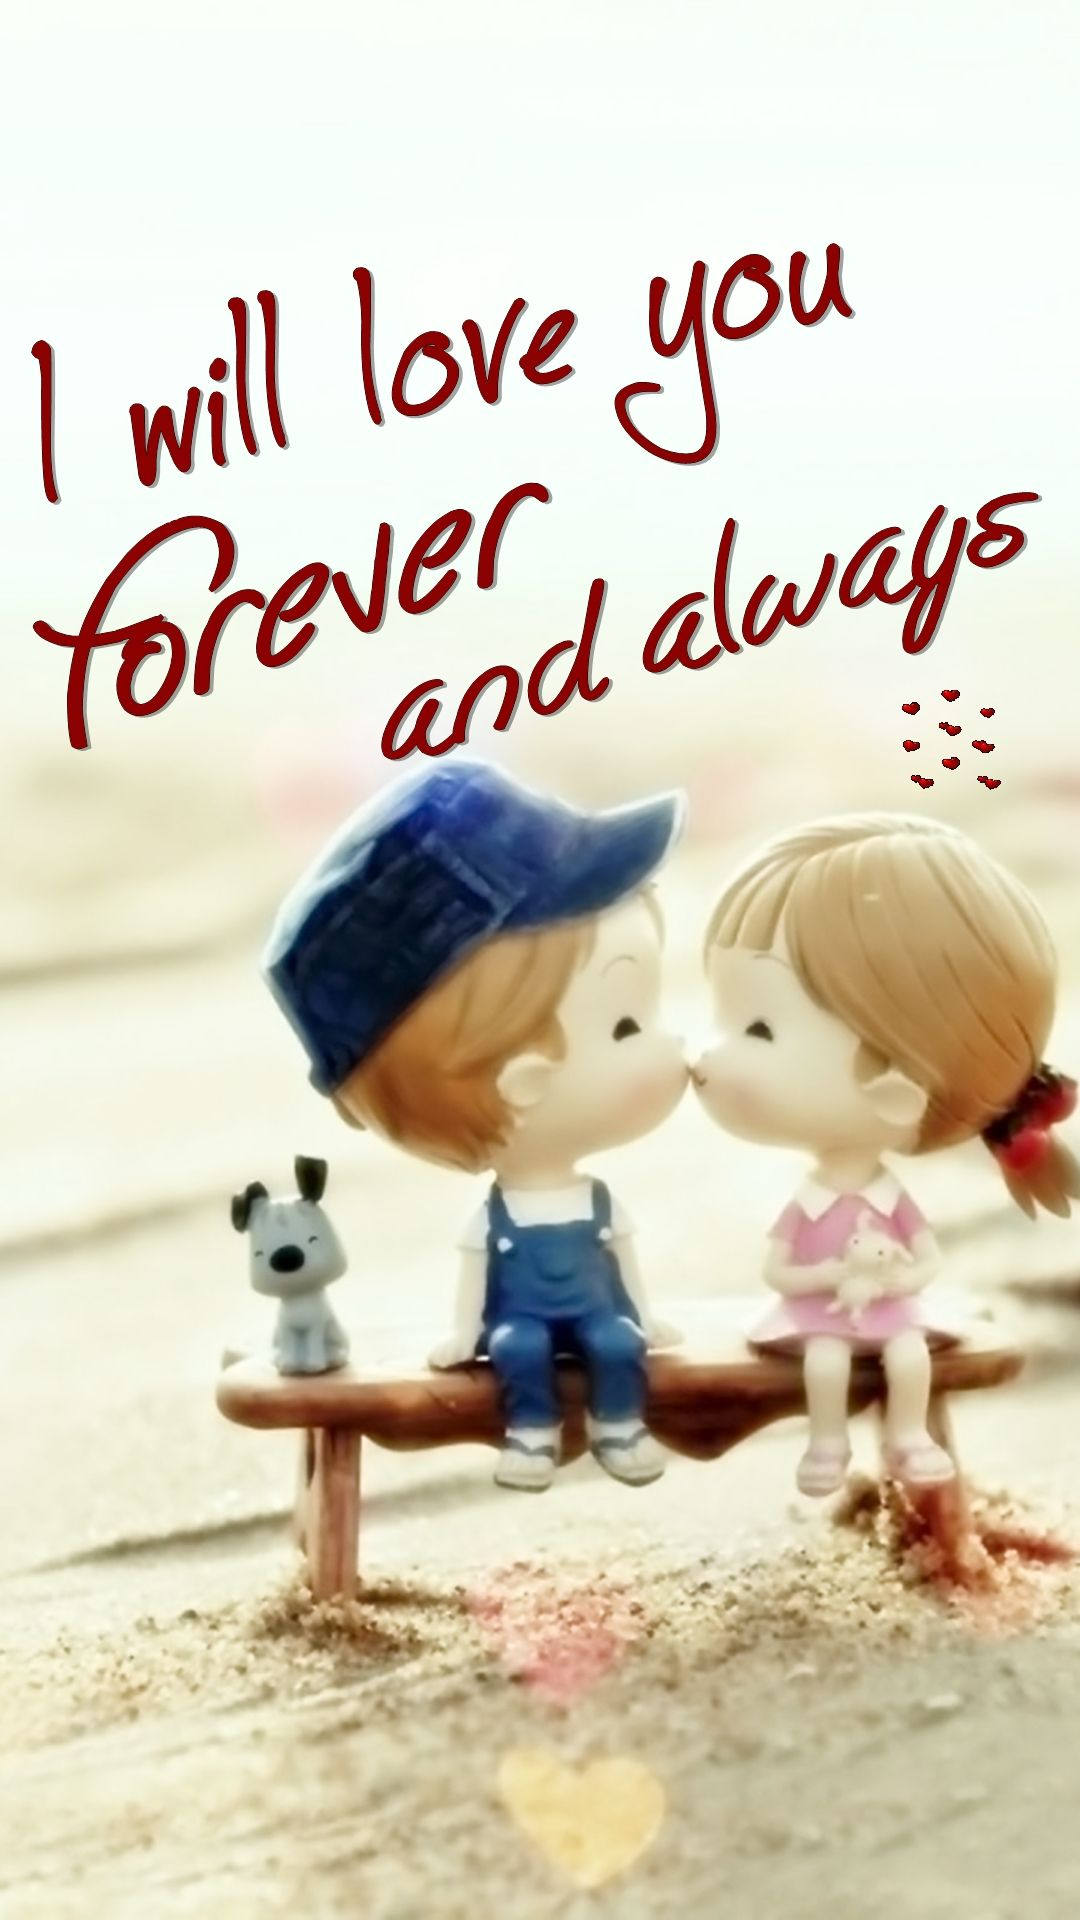 Love Forever Wallpapers : Tap image for more love wallpapers! Love you forever ...